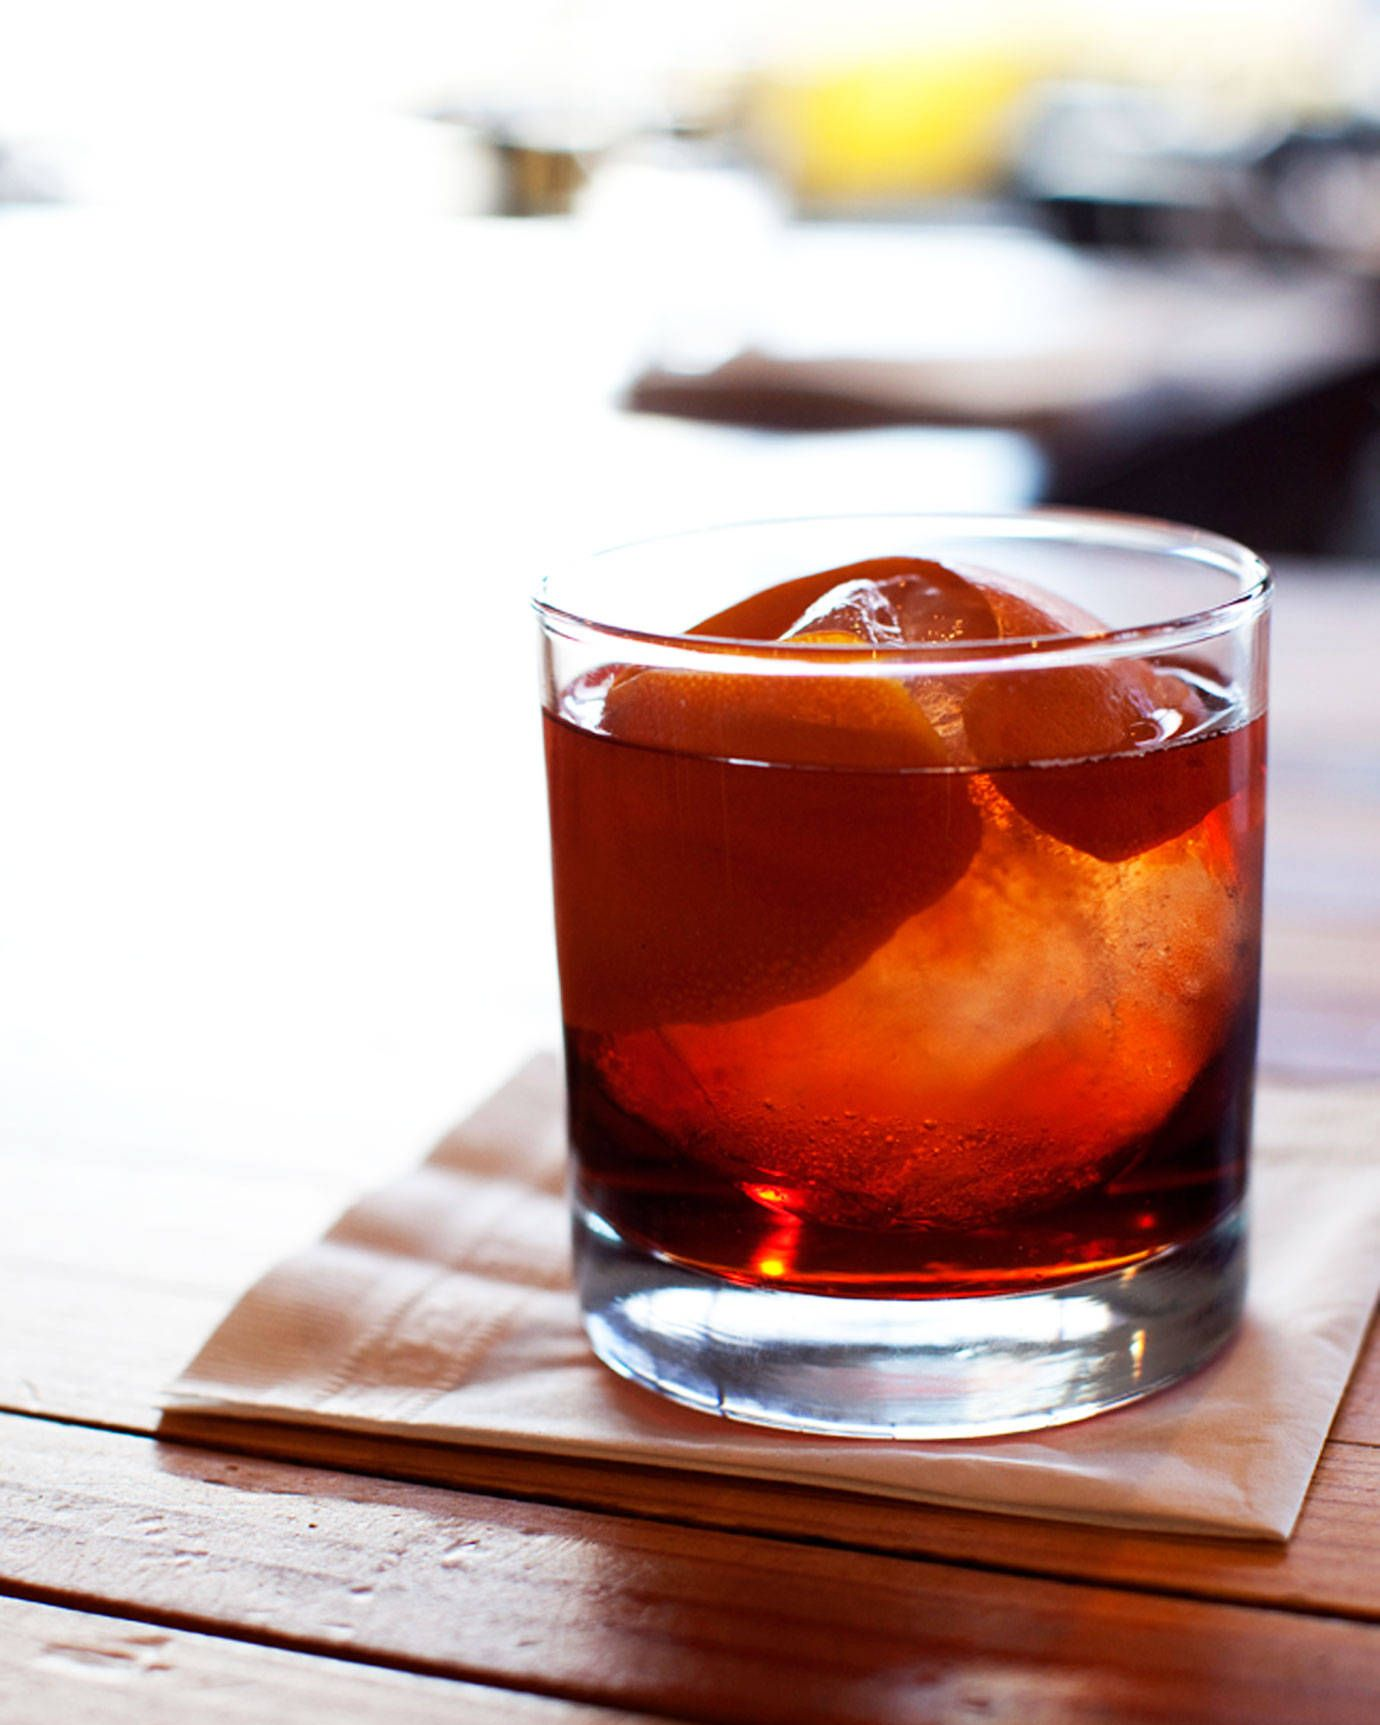 "<p><span class=""userContent"">When there are sub-freezing temperatures outside, we crave potent cocktails that will warm our souls like the Oaxacan Winter from <a title=""Oak at Fourteenth"" href=""http://oakatfourteenth.com/"">Oak at Fourteenth</a> in Boulder, CO:<br /> <br /> 1.5 oz. Sombra Mezcal<br /> 0.5 oz. Antica Carpano <br /> 0.25 oz. Navan<br /> 0.25 oz. Allspice D<span class=""text_exposed_hide"">...</span><span class=""text_exposed_show"">ram<br /> 0.25 oz. Agave Nectar <br /> 2 Dashes Mole bitters<br /> <br /> 1) Place ingredients in a mixing glass.<br /> 2) Add ice stir until well chilled.<br /> 3) Pour over one large piece of hand chipped ice.<br /> 4) Garnish with an orange peel.</span></span></p>"